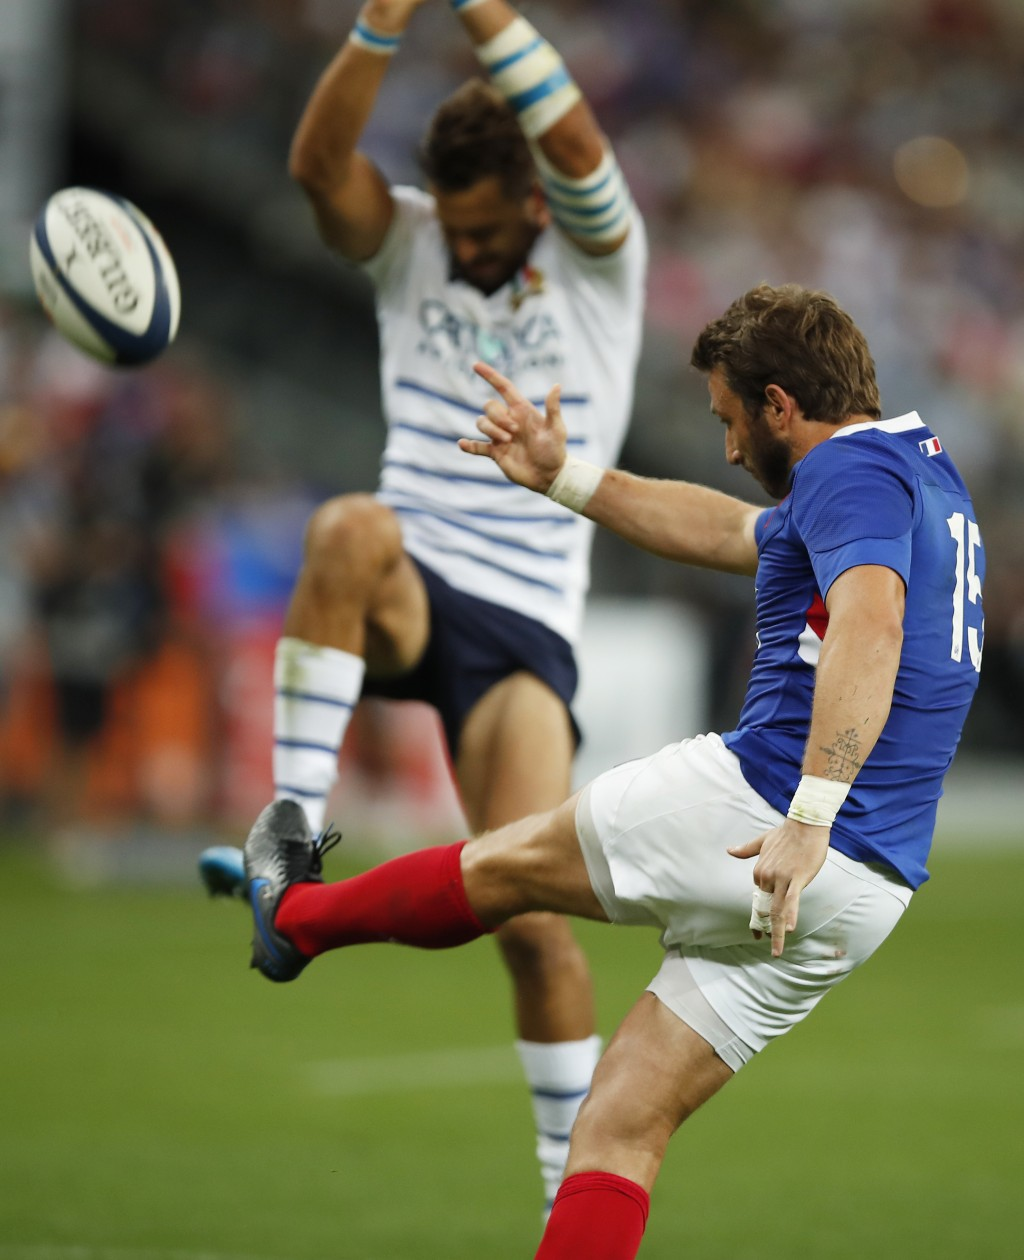 France's Maxime Medard kicks the ball during a friendly rugby test match between France and Italy at Stade de France in Saint Denis, north of Paris, F...